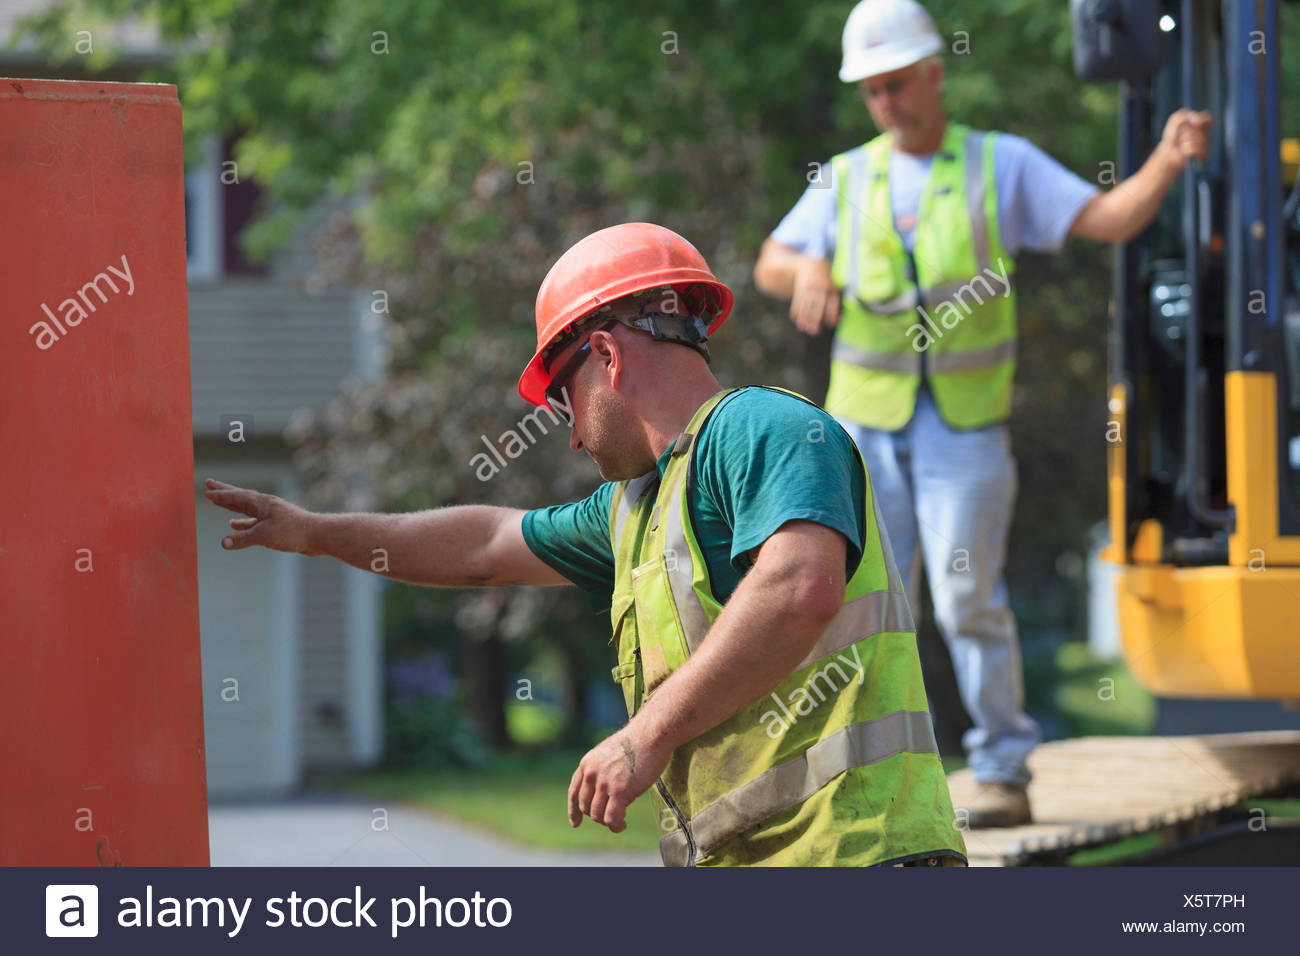 Construction worker directing placement of shoring - Stock Image